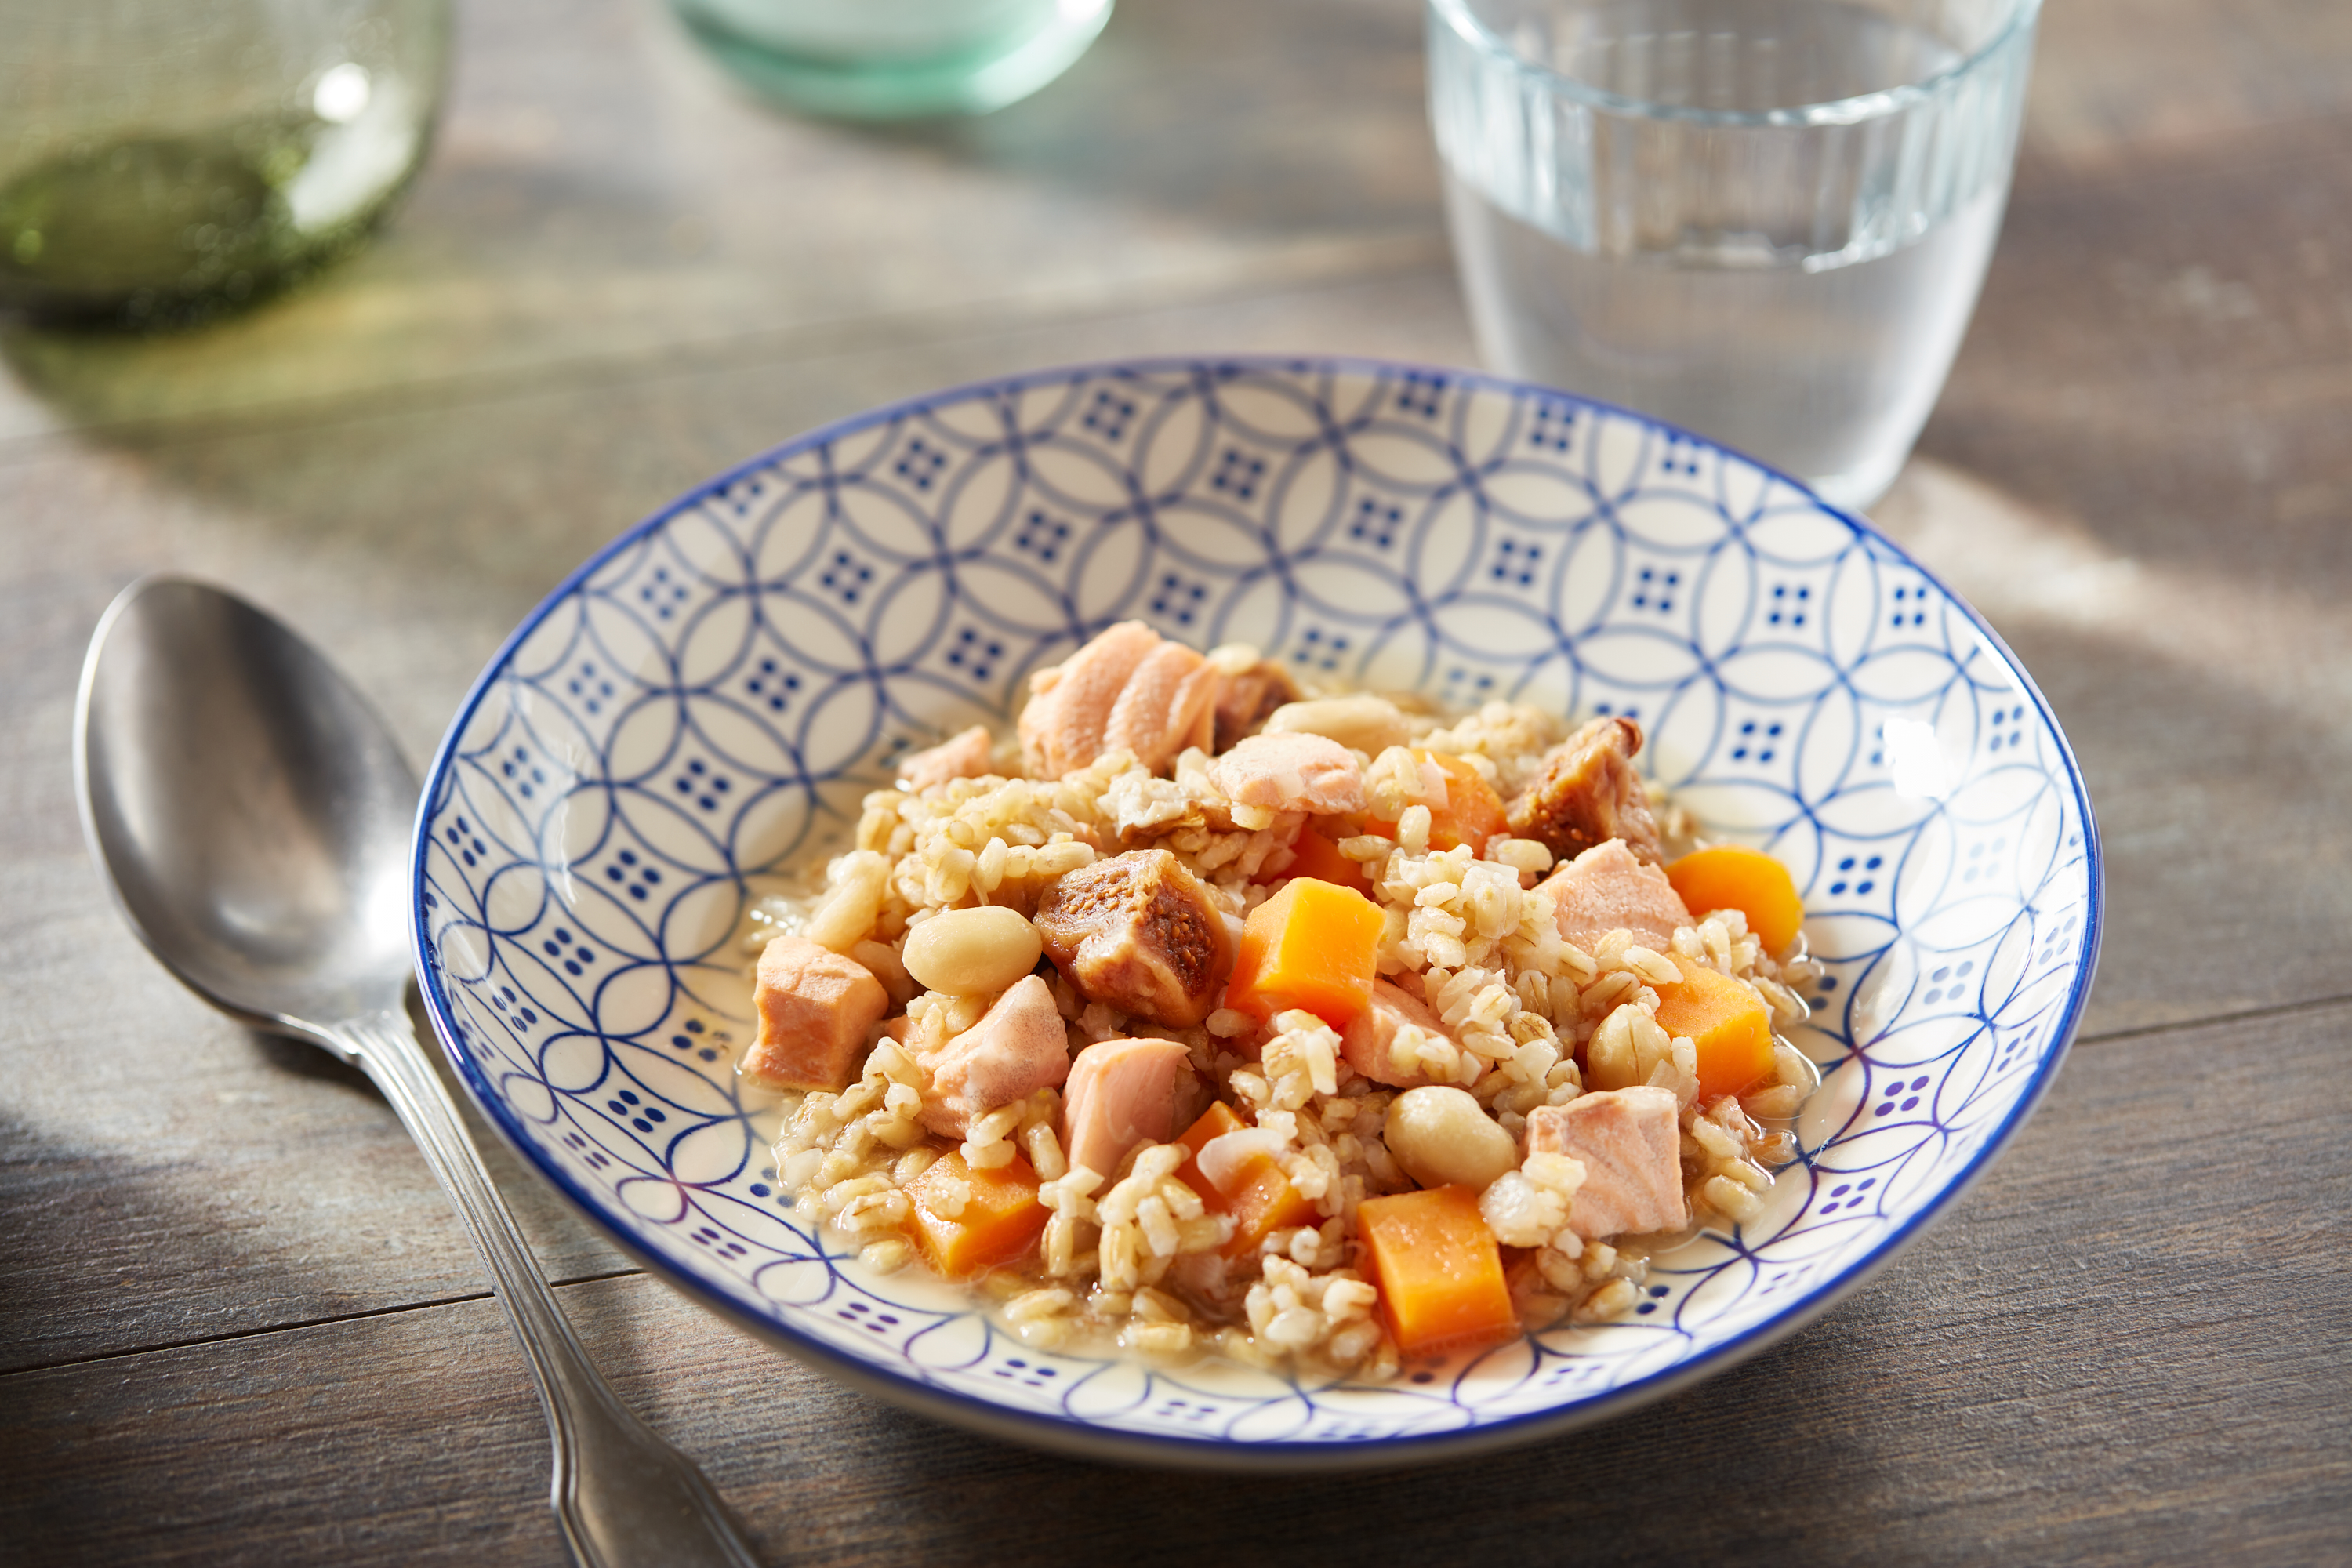 Barley casserole with shiitake mushrooms, salmon, dried figs and peanuts